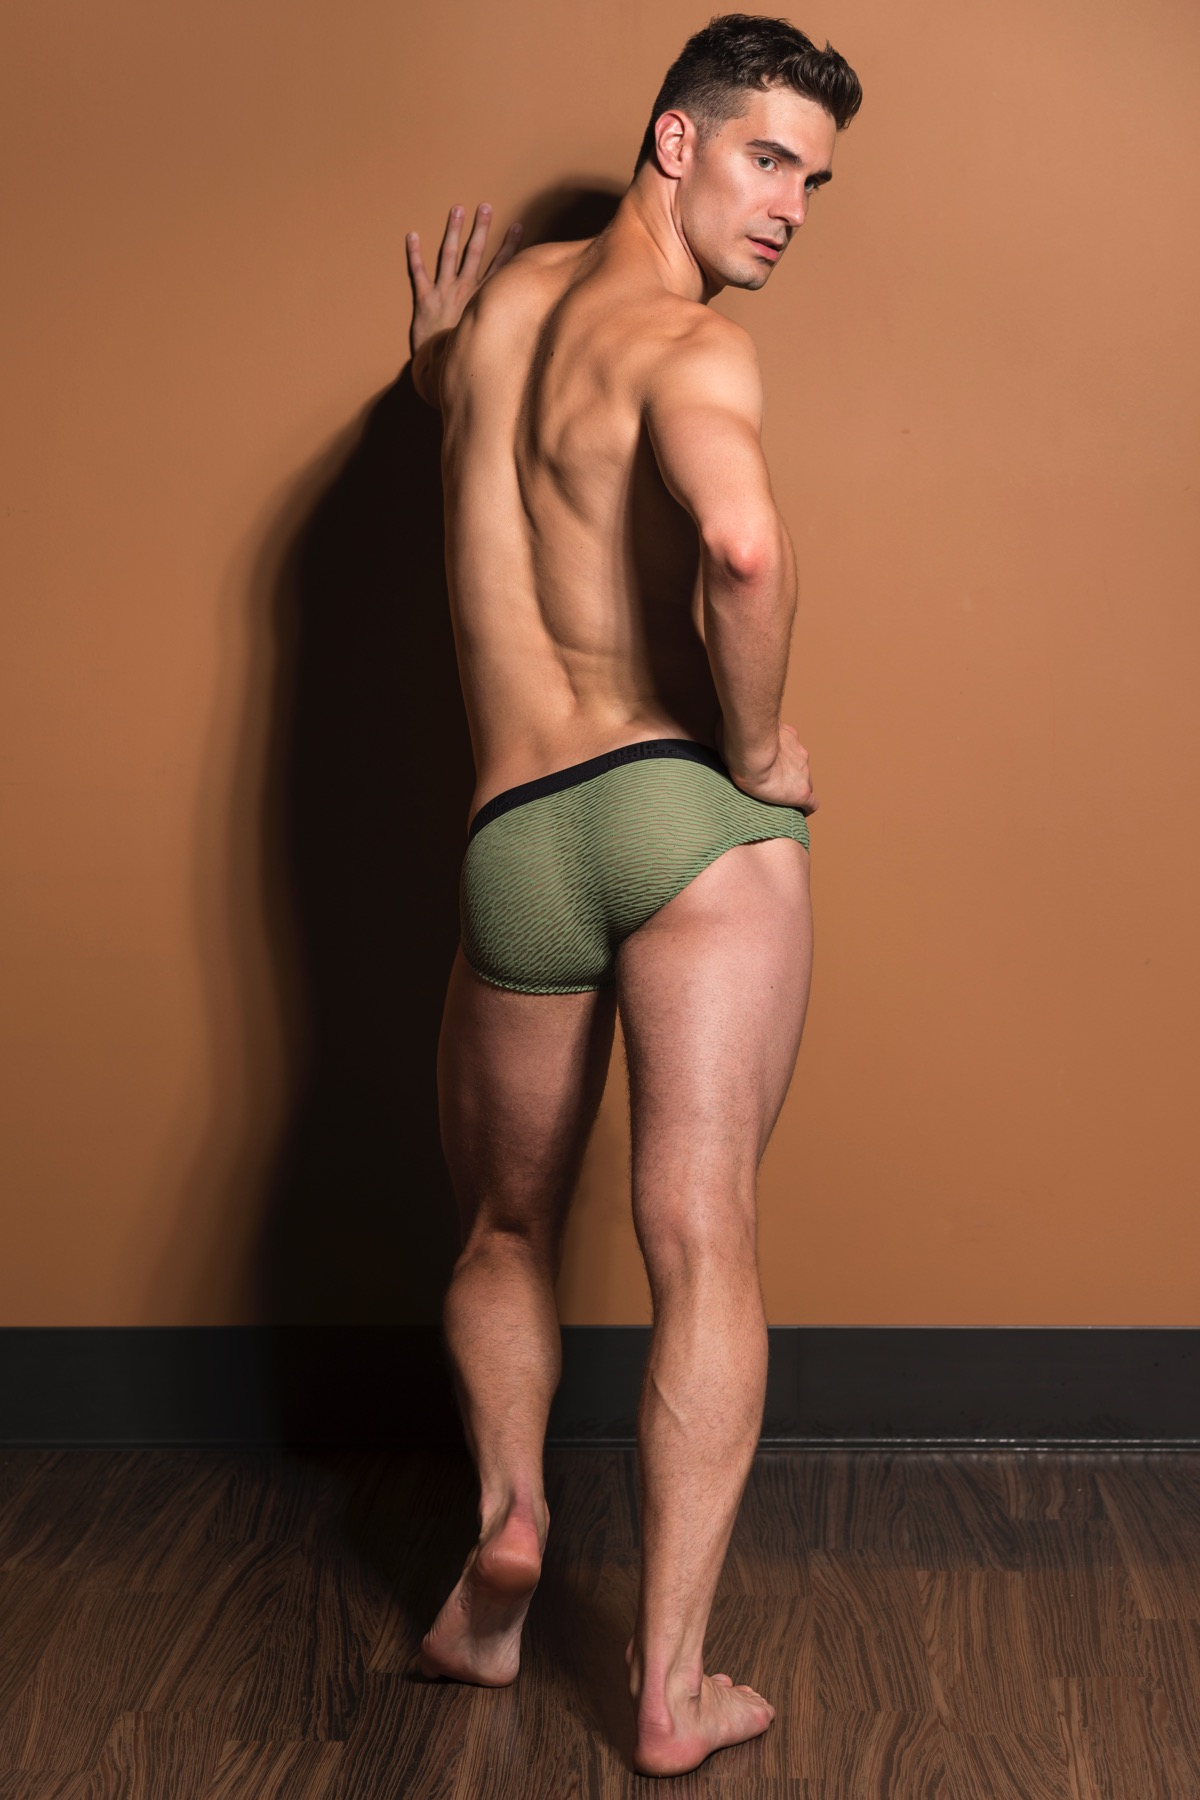 Brief Distraction featuring Ozzie Totten by RSH Photography